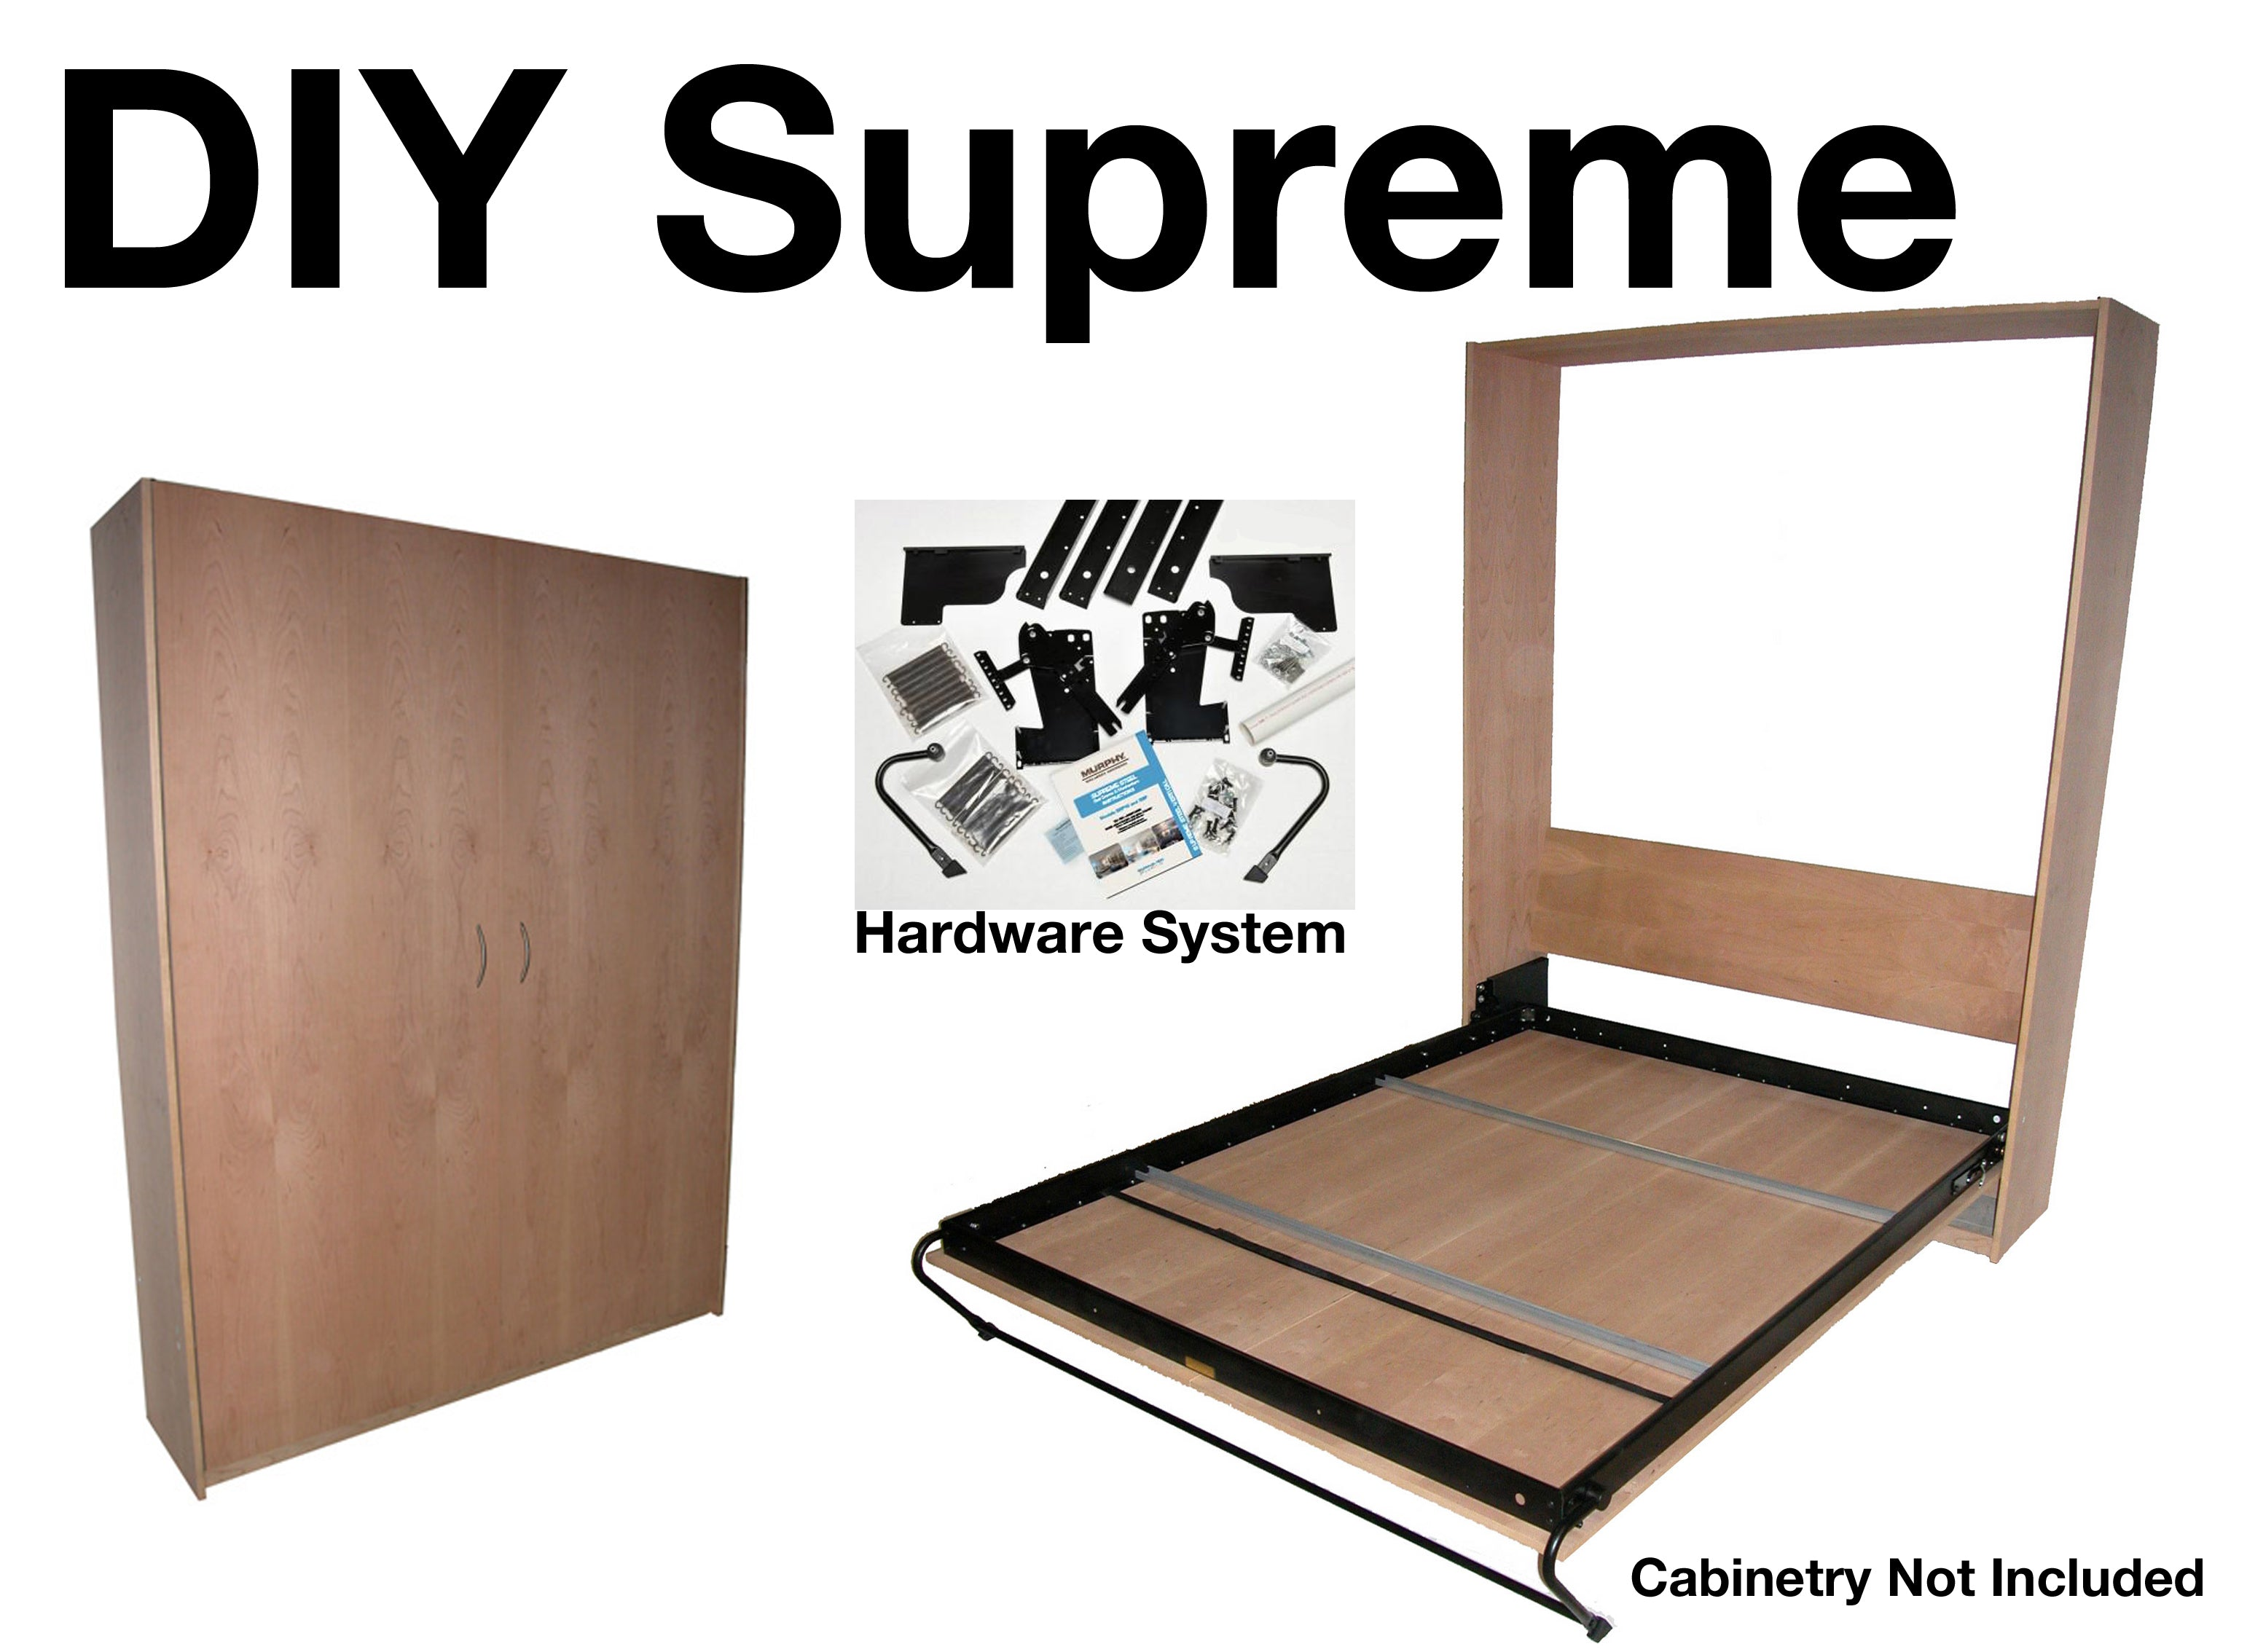 Upright Supreme, Murphy Bed Hardware, Steel Bed Frame ...